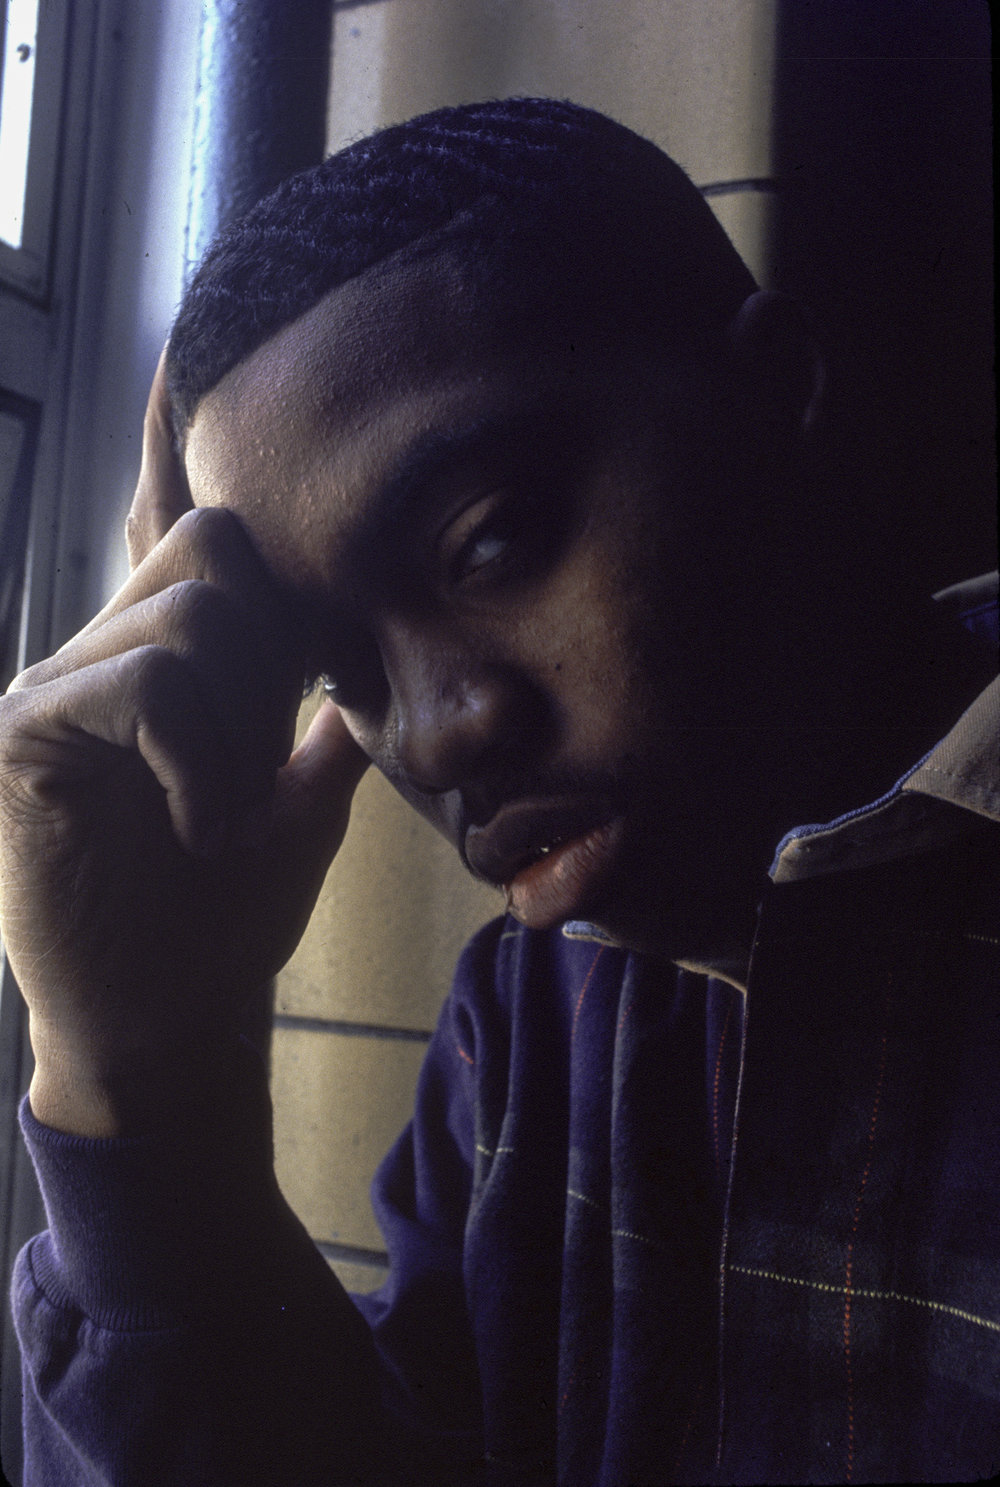 This was the original image used in the 5 mic review of Nas' debut album Illmatic in the Source Magazine.